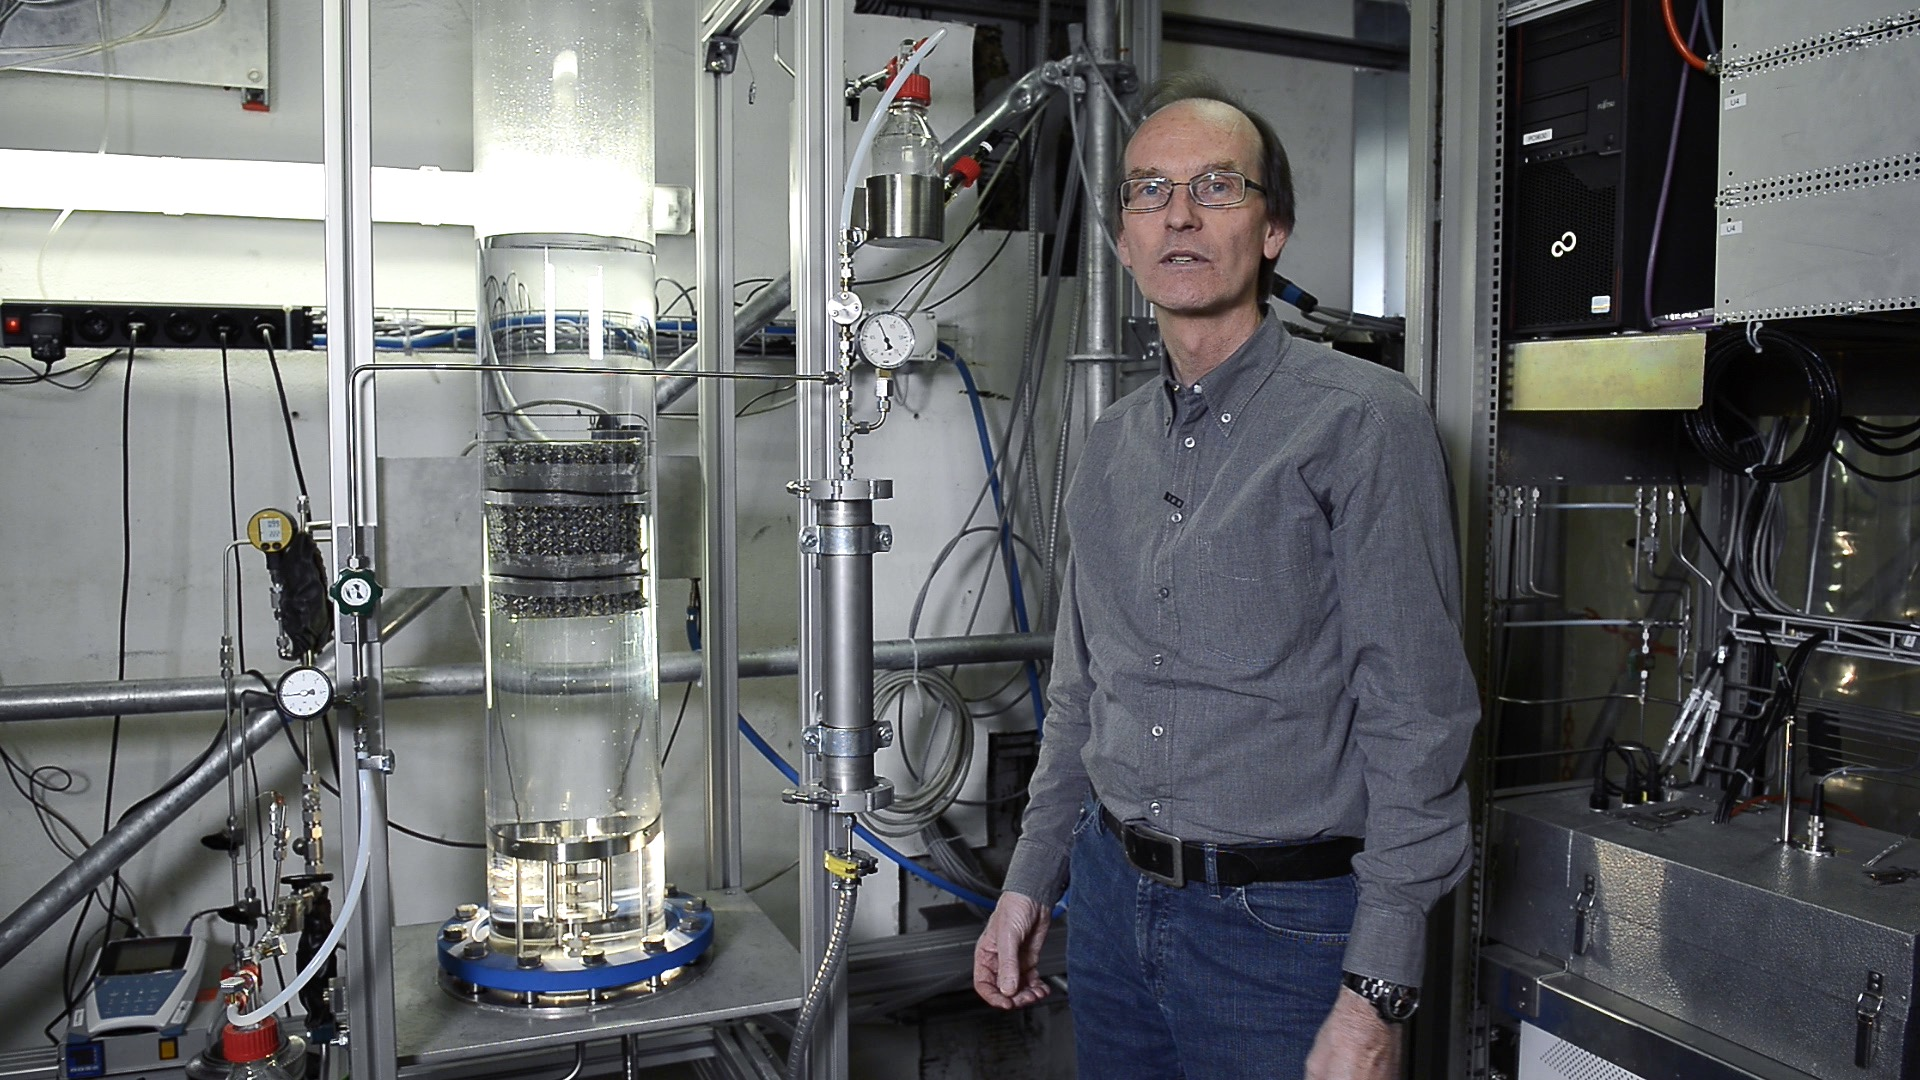 PSI scientist Detlef Suckow. Photo: Paul Scherrer Institute/Markus Fischer.